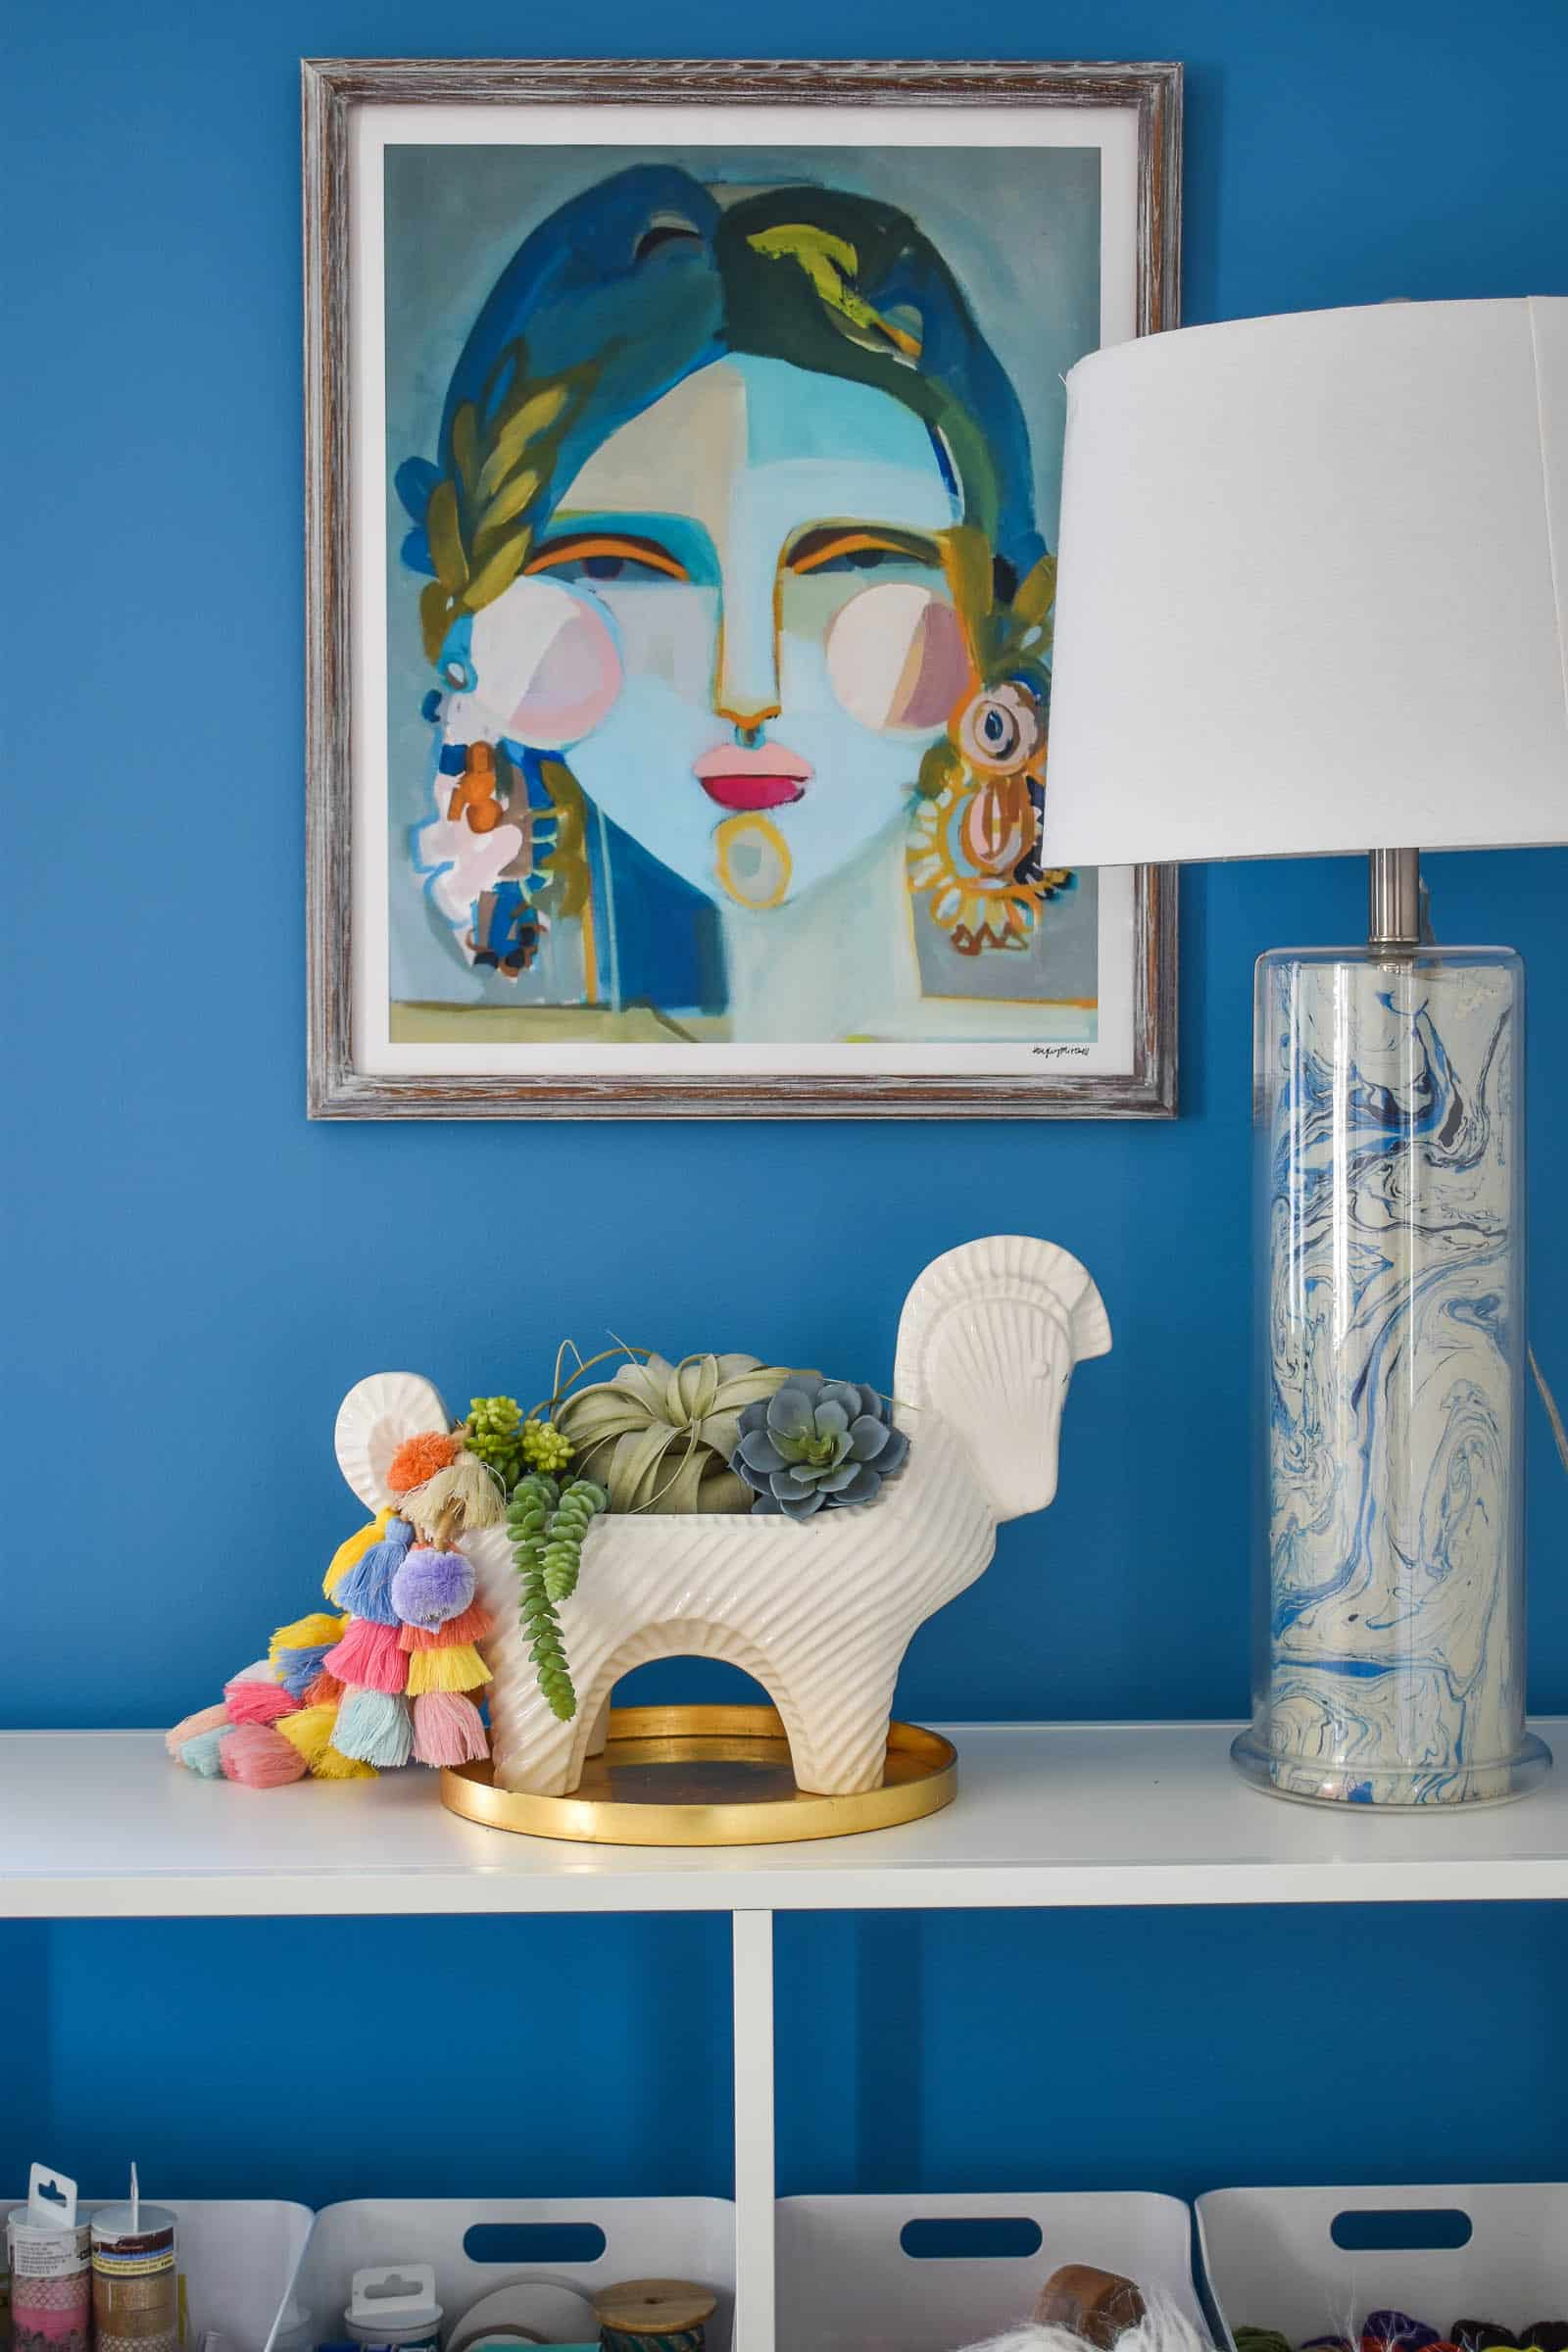 shelfie vignette in blue colorful office